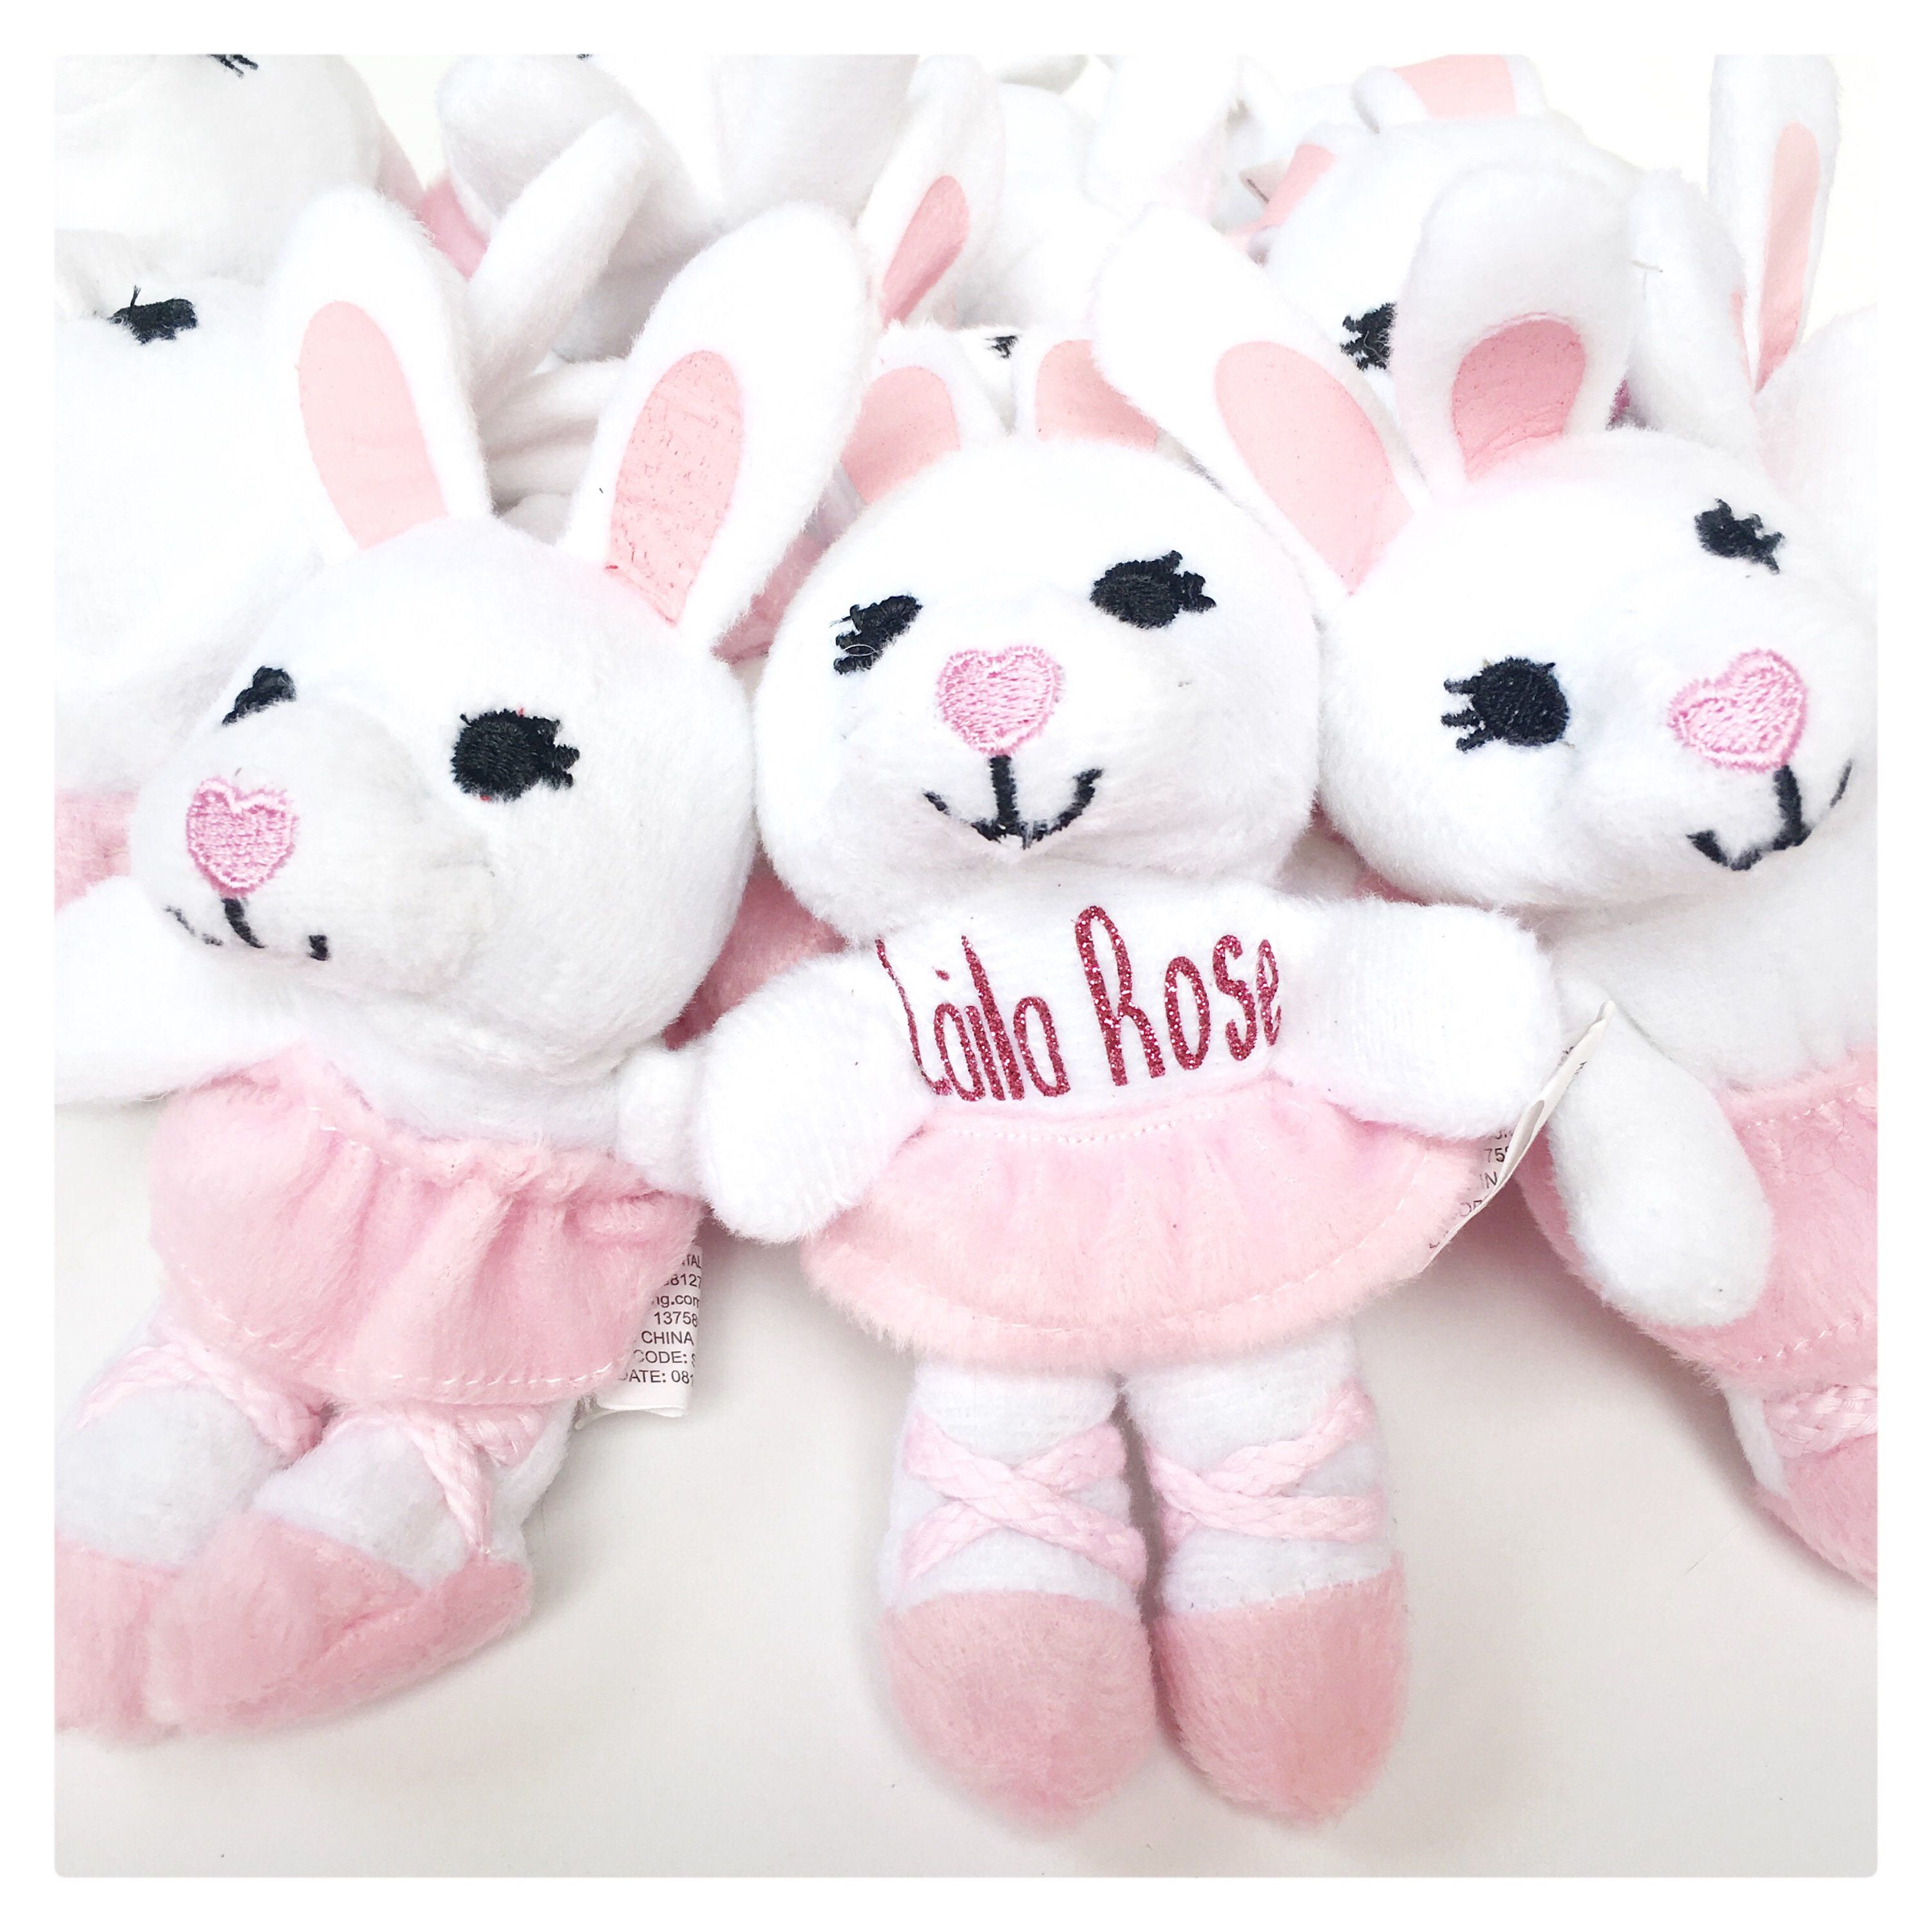 Personalized bunny easter bunny easter basket gifts baby personalized bunny easter bunny easter basket gifts baby easter gifts girl bunny sheep plushie bunny plushie stuffed animals negle Image collections